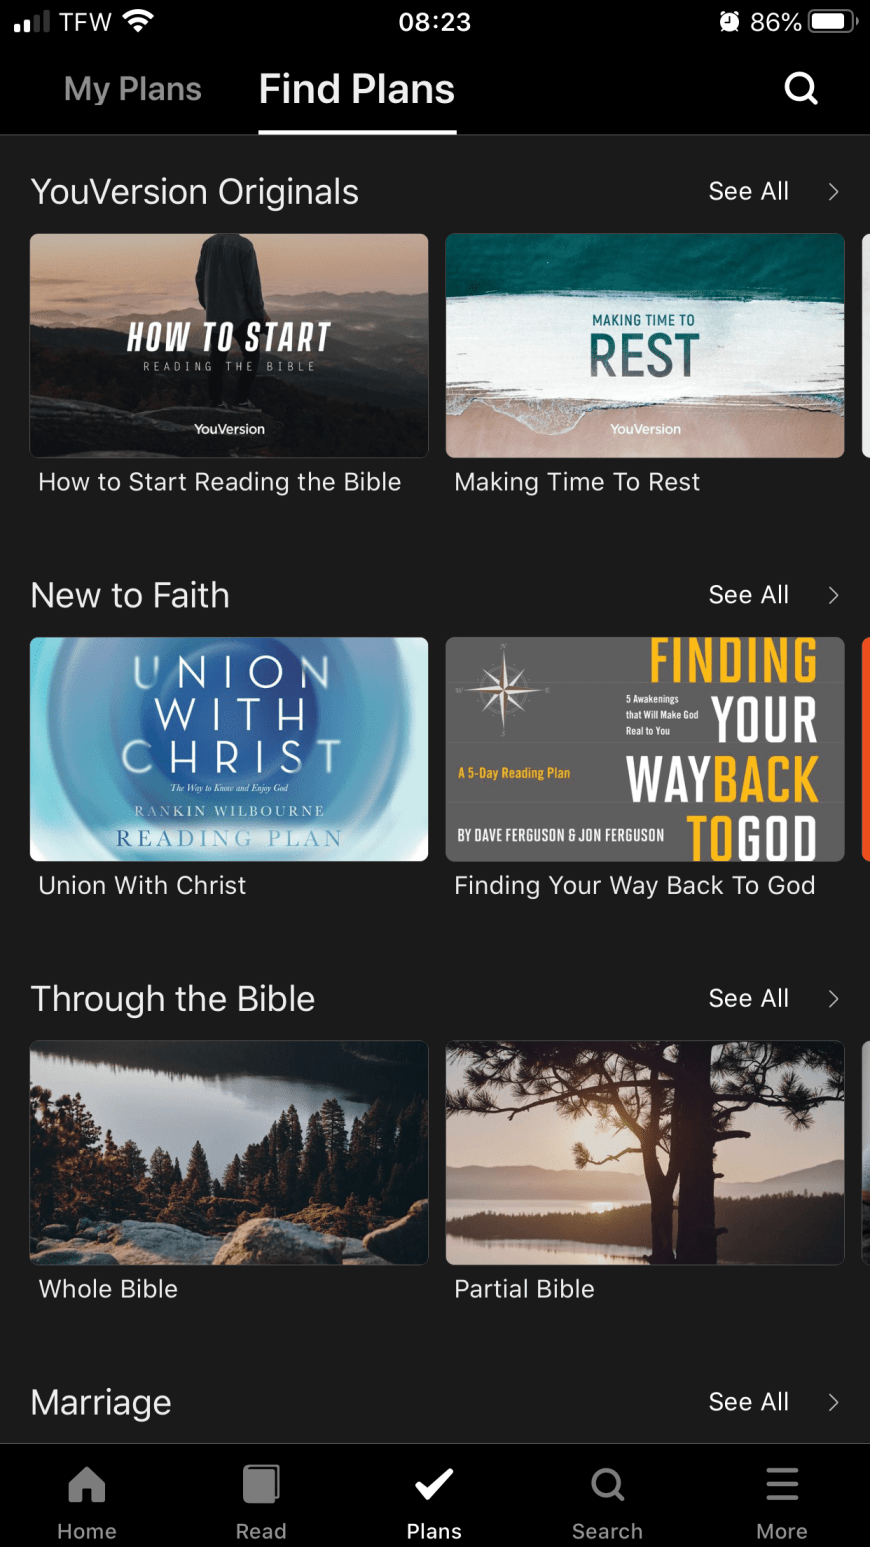 YouVersion shares tips to stick with Bible-reading resolutions throughout 2020